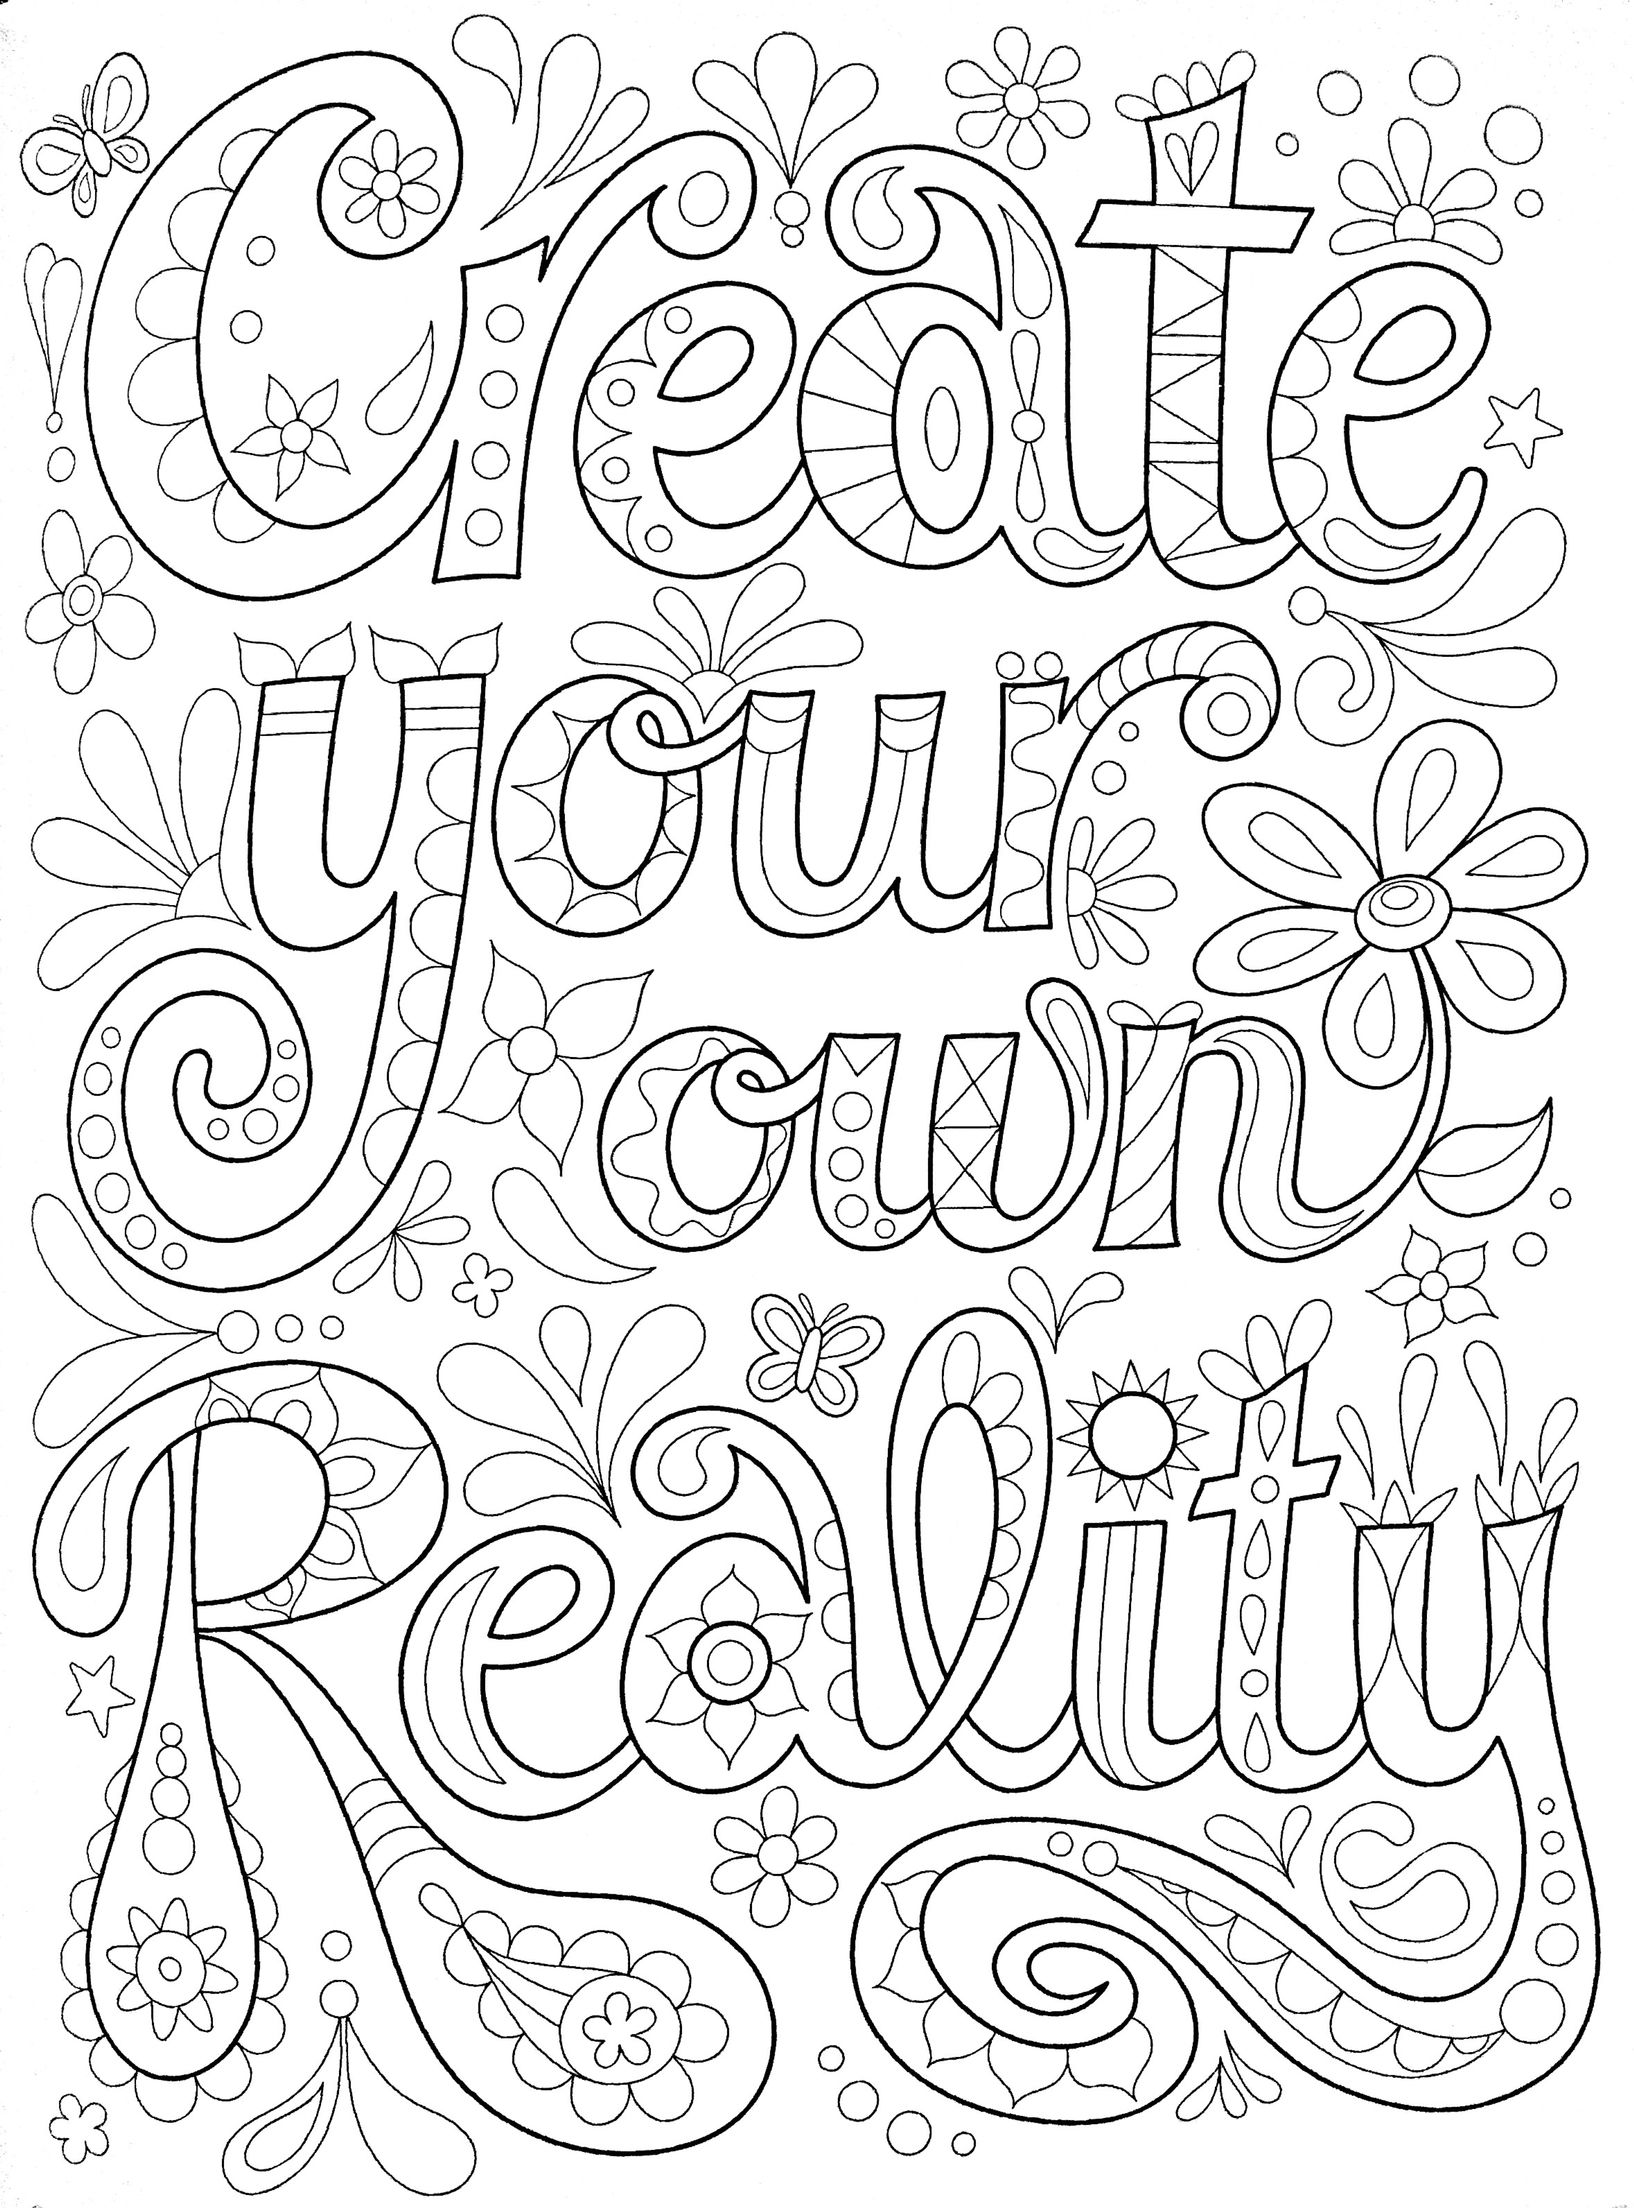 free printable coloring pages for adults and kids worship coloring book deborah muller school coloring kids and pages coloring free adults for printable